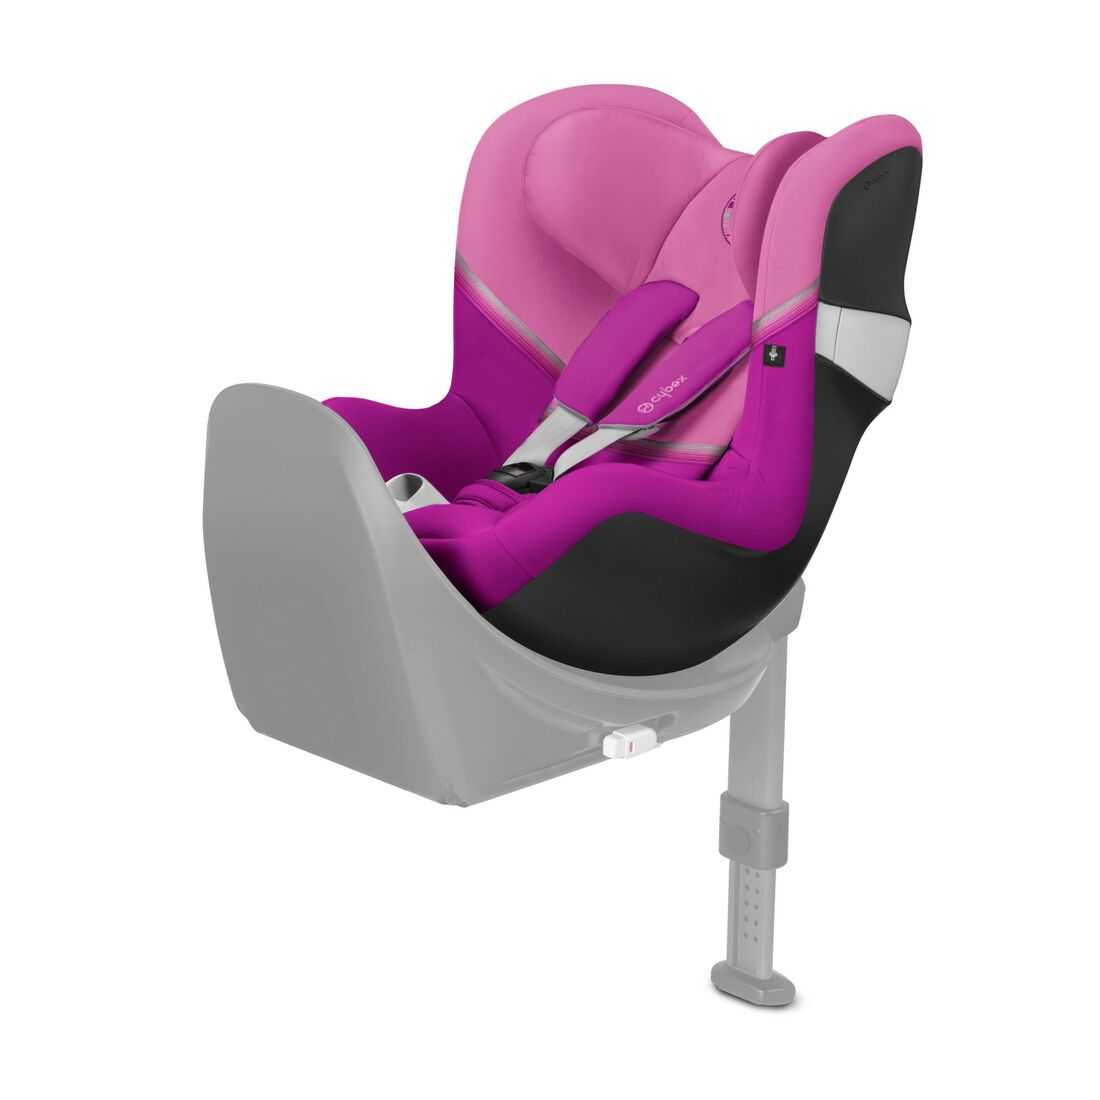 CYBEX Sirona M2 i-Size - Magnolia Pink in Magnolia Pink large image number 1